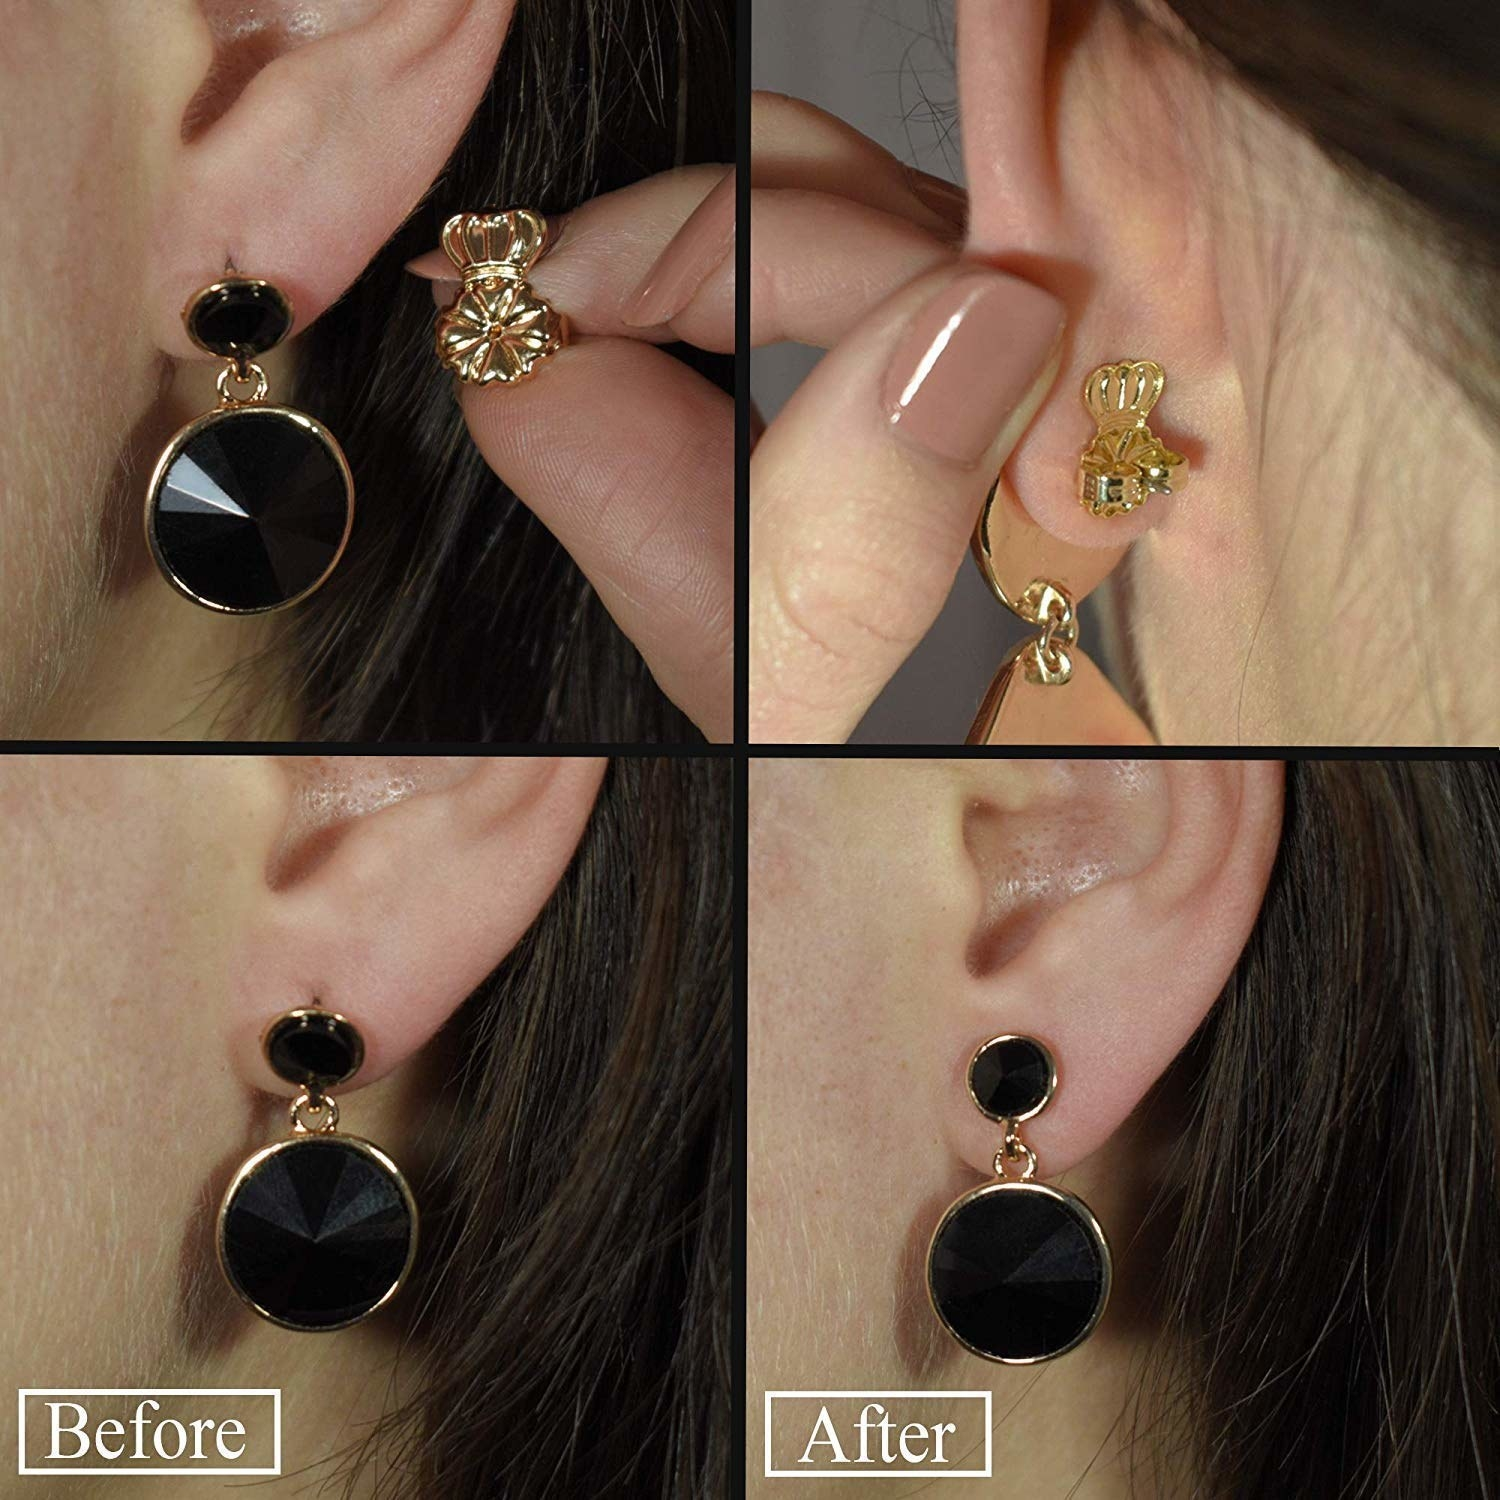 showing the difference between a heavy earring without and then with the lifter